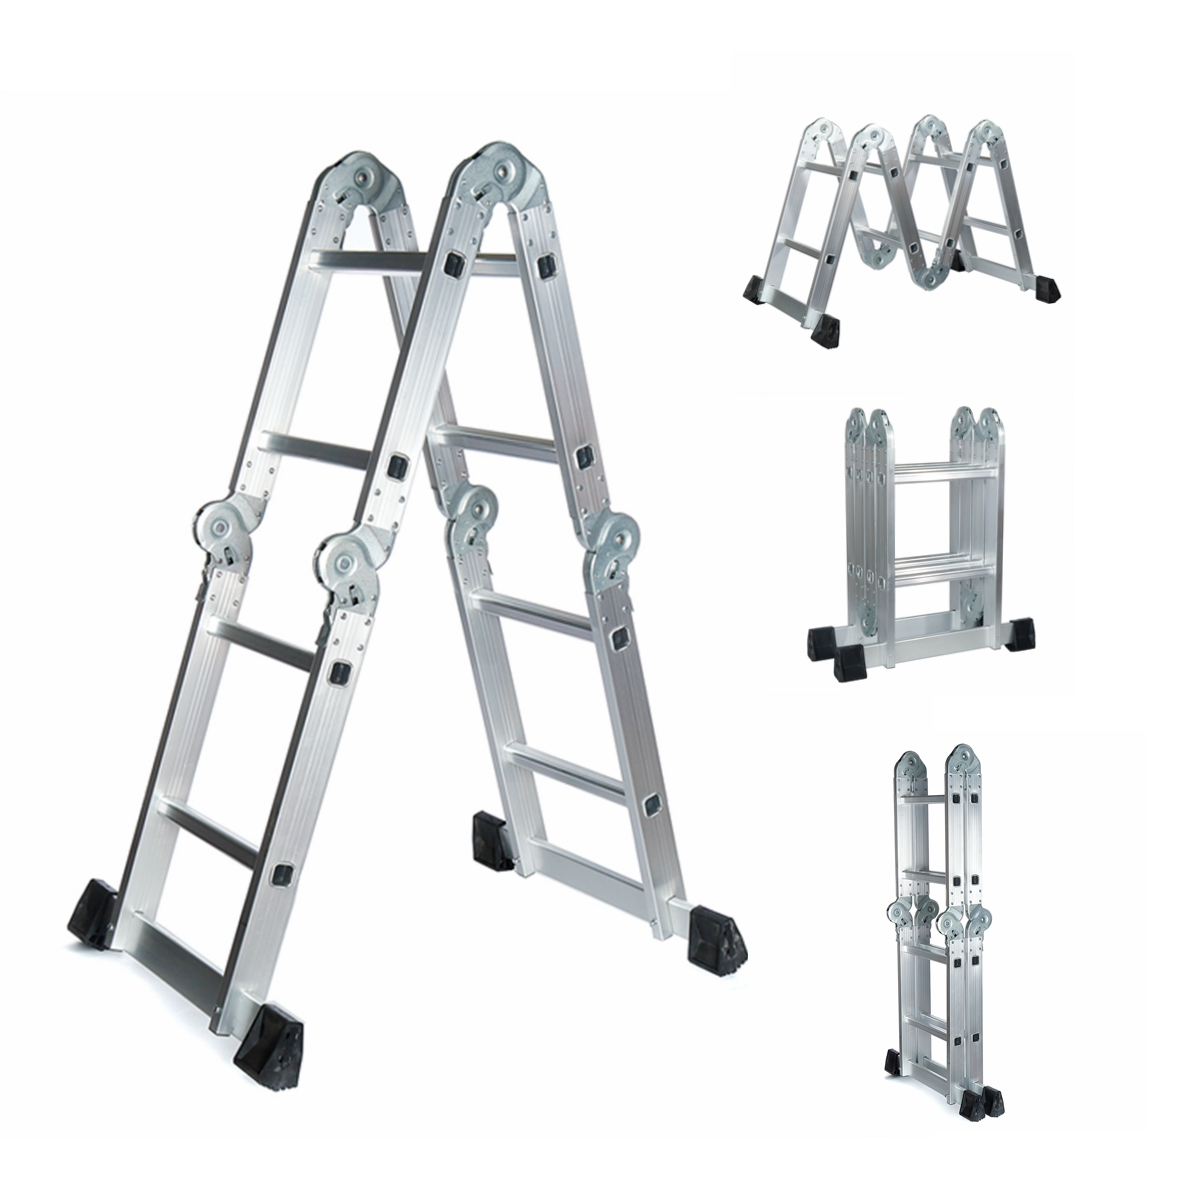 3.7m Multi-Purpose Extension Folding Step Ladder Telescopic Folding Ladder Step-Stand House Aluminium Ladders Telescoping